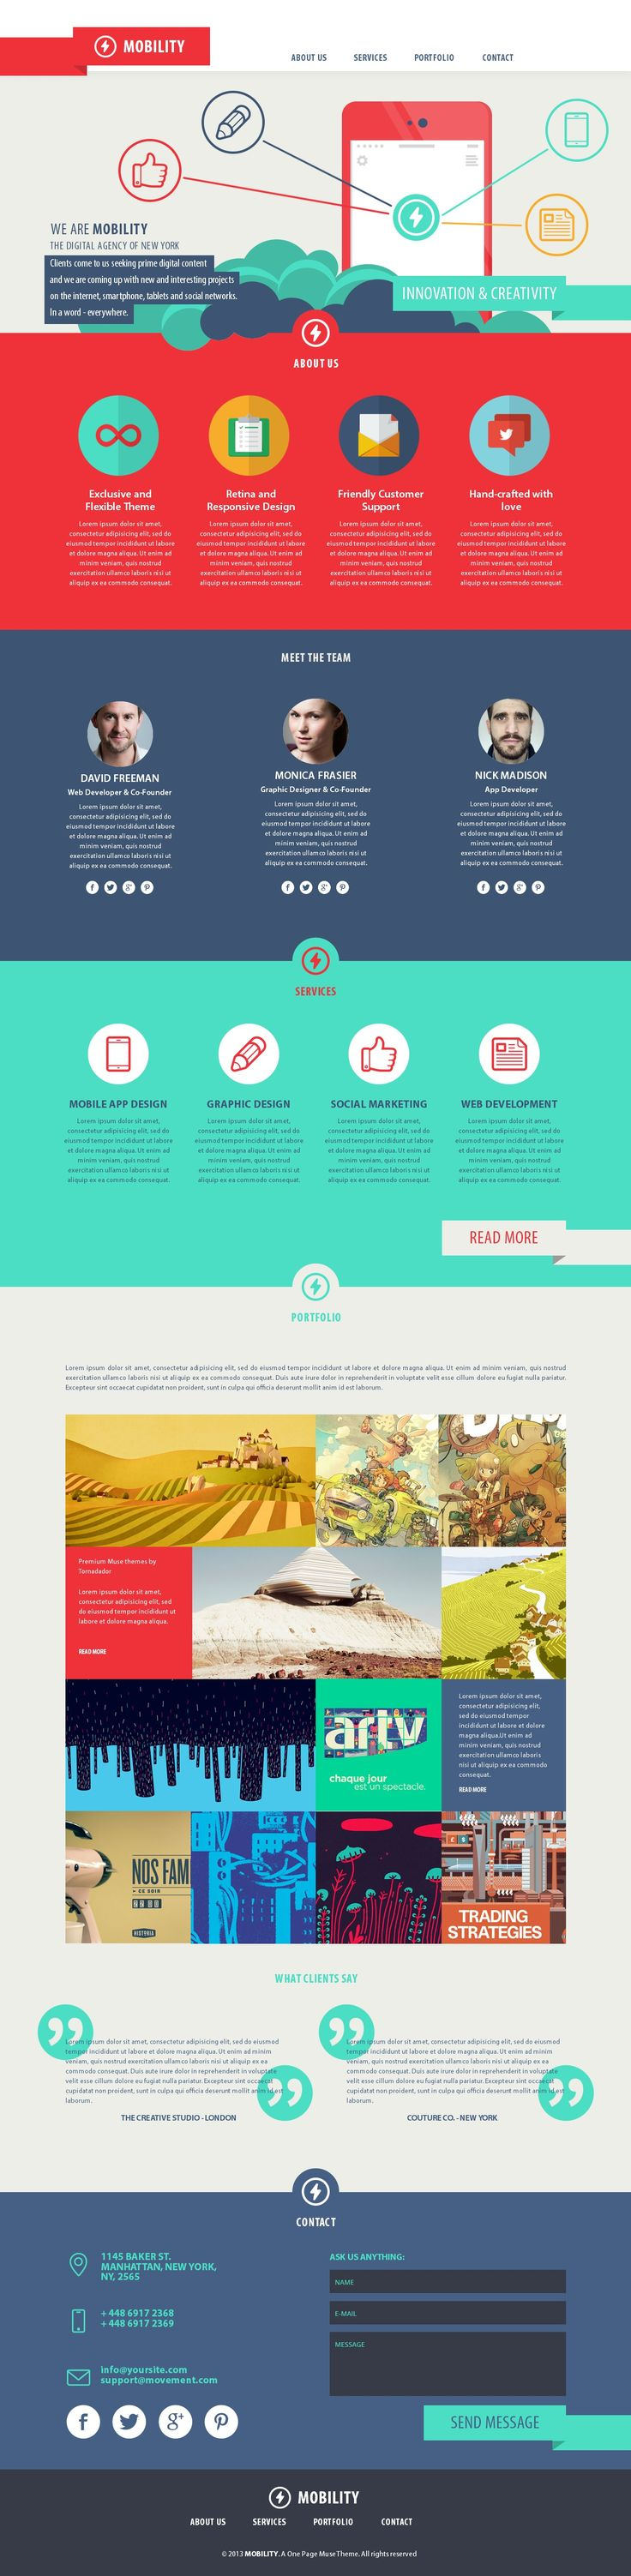 Mobility - One Page Muse Theme http://themeforest.net/item/mobility-one-page-muse-theme/6177434?ref=wpaw #web #design #muse